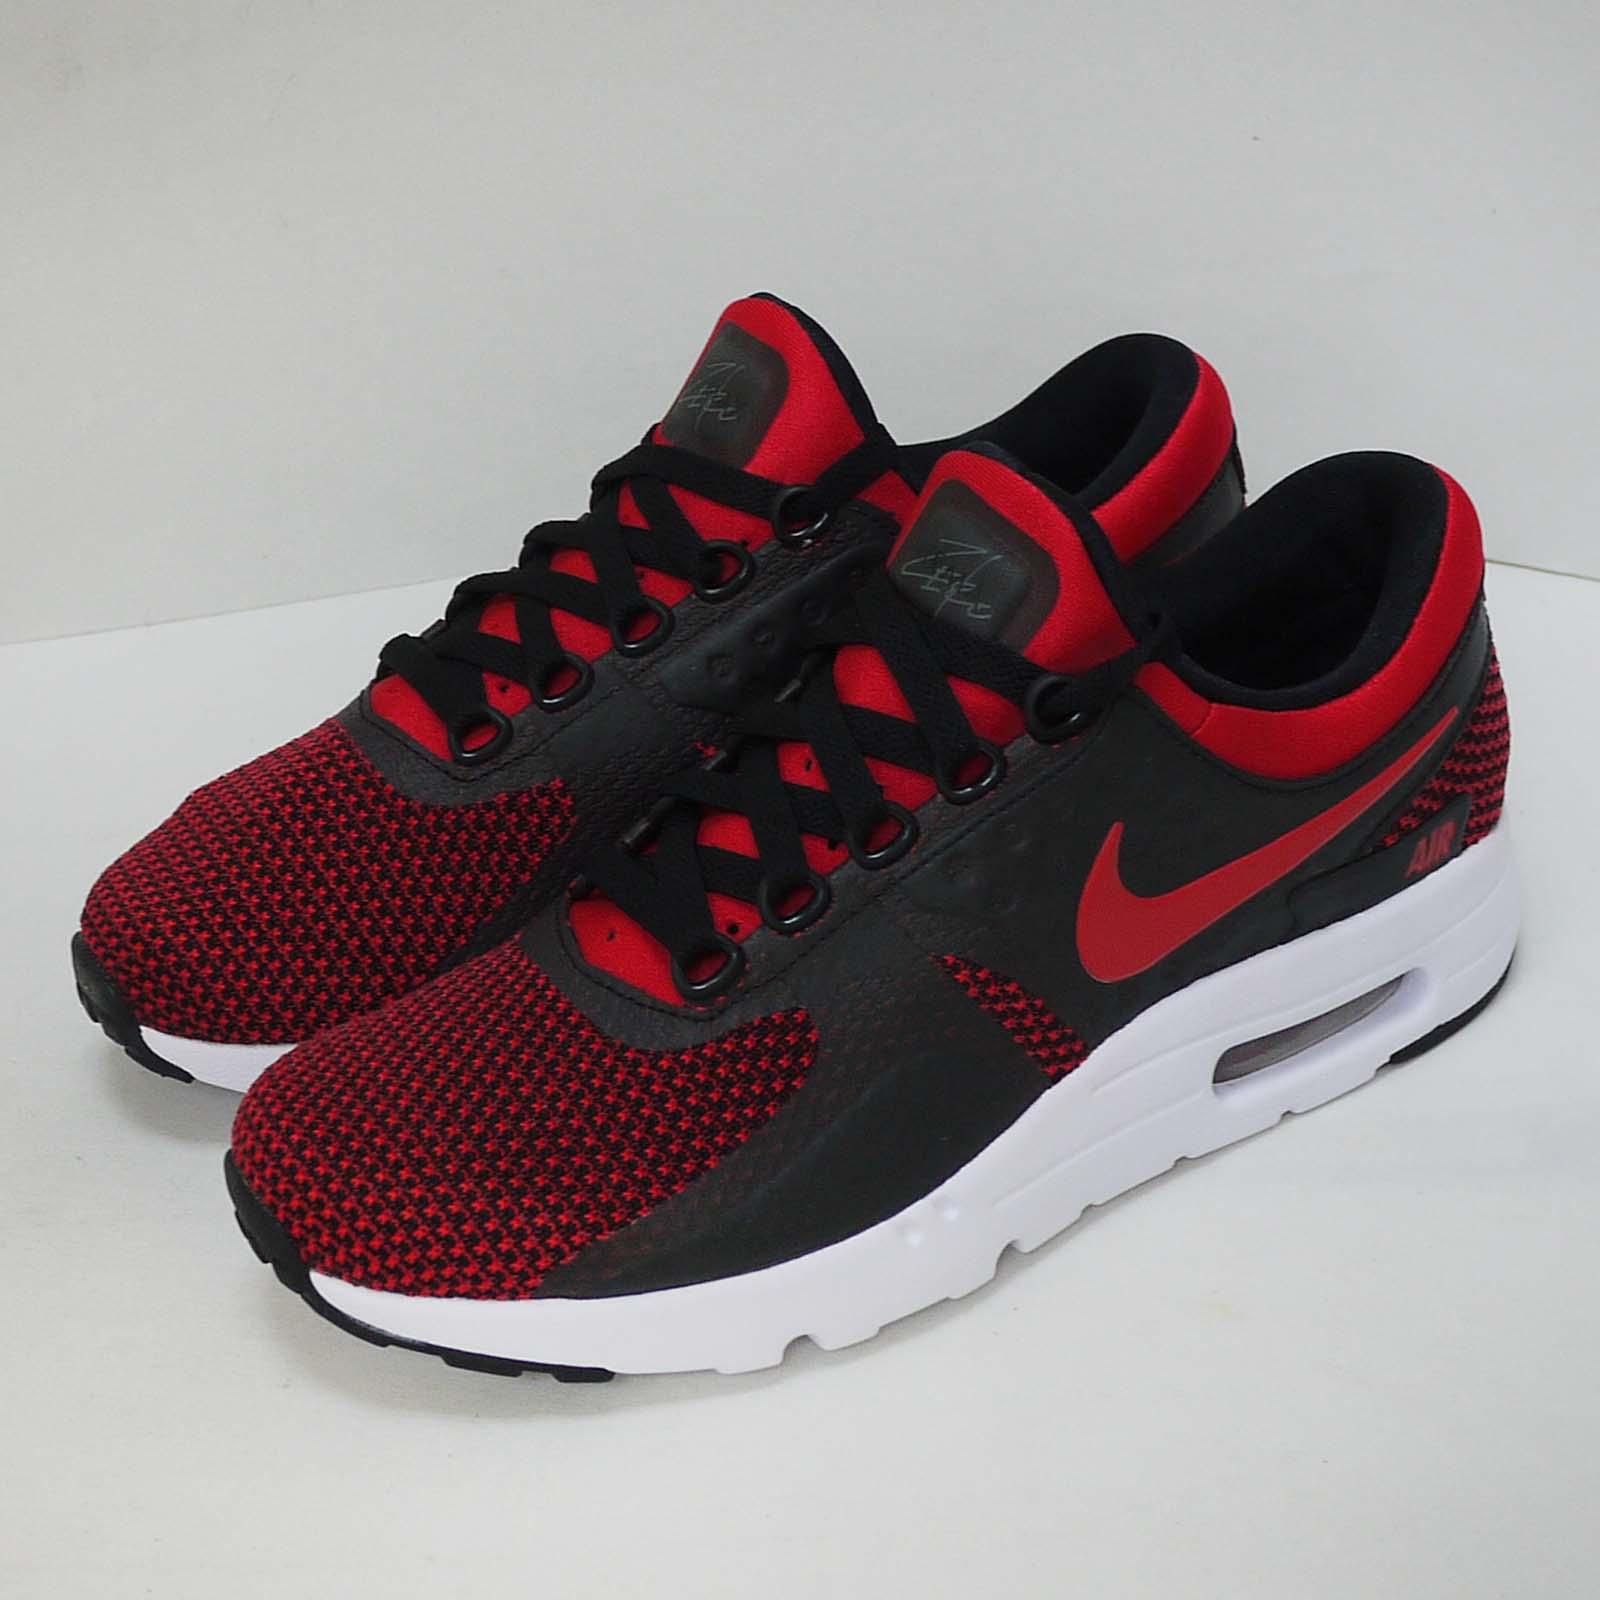 e5016e5c8c76 Details about Nike Air Max Zero Essential Right Foot With Tiny Defect Men  Shoes 876070-600